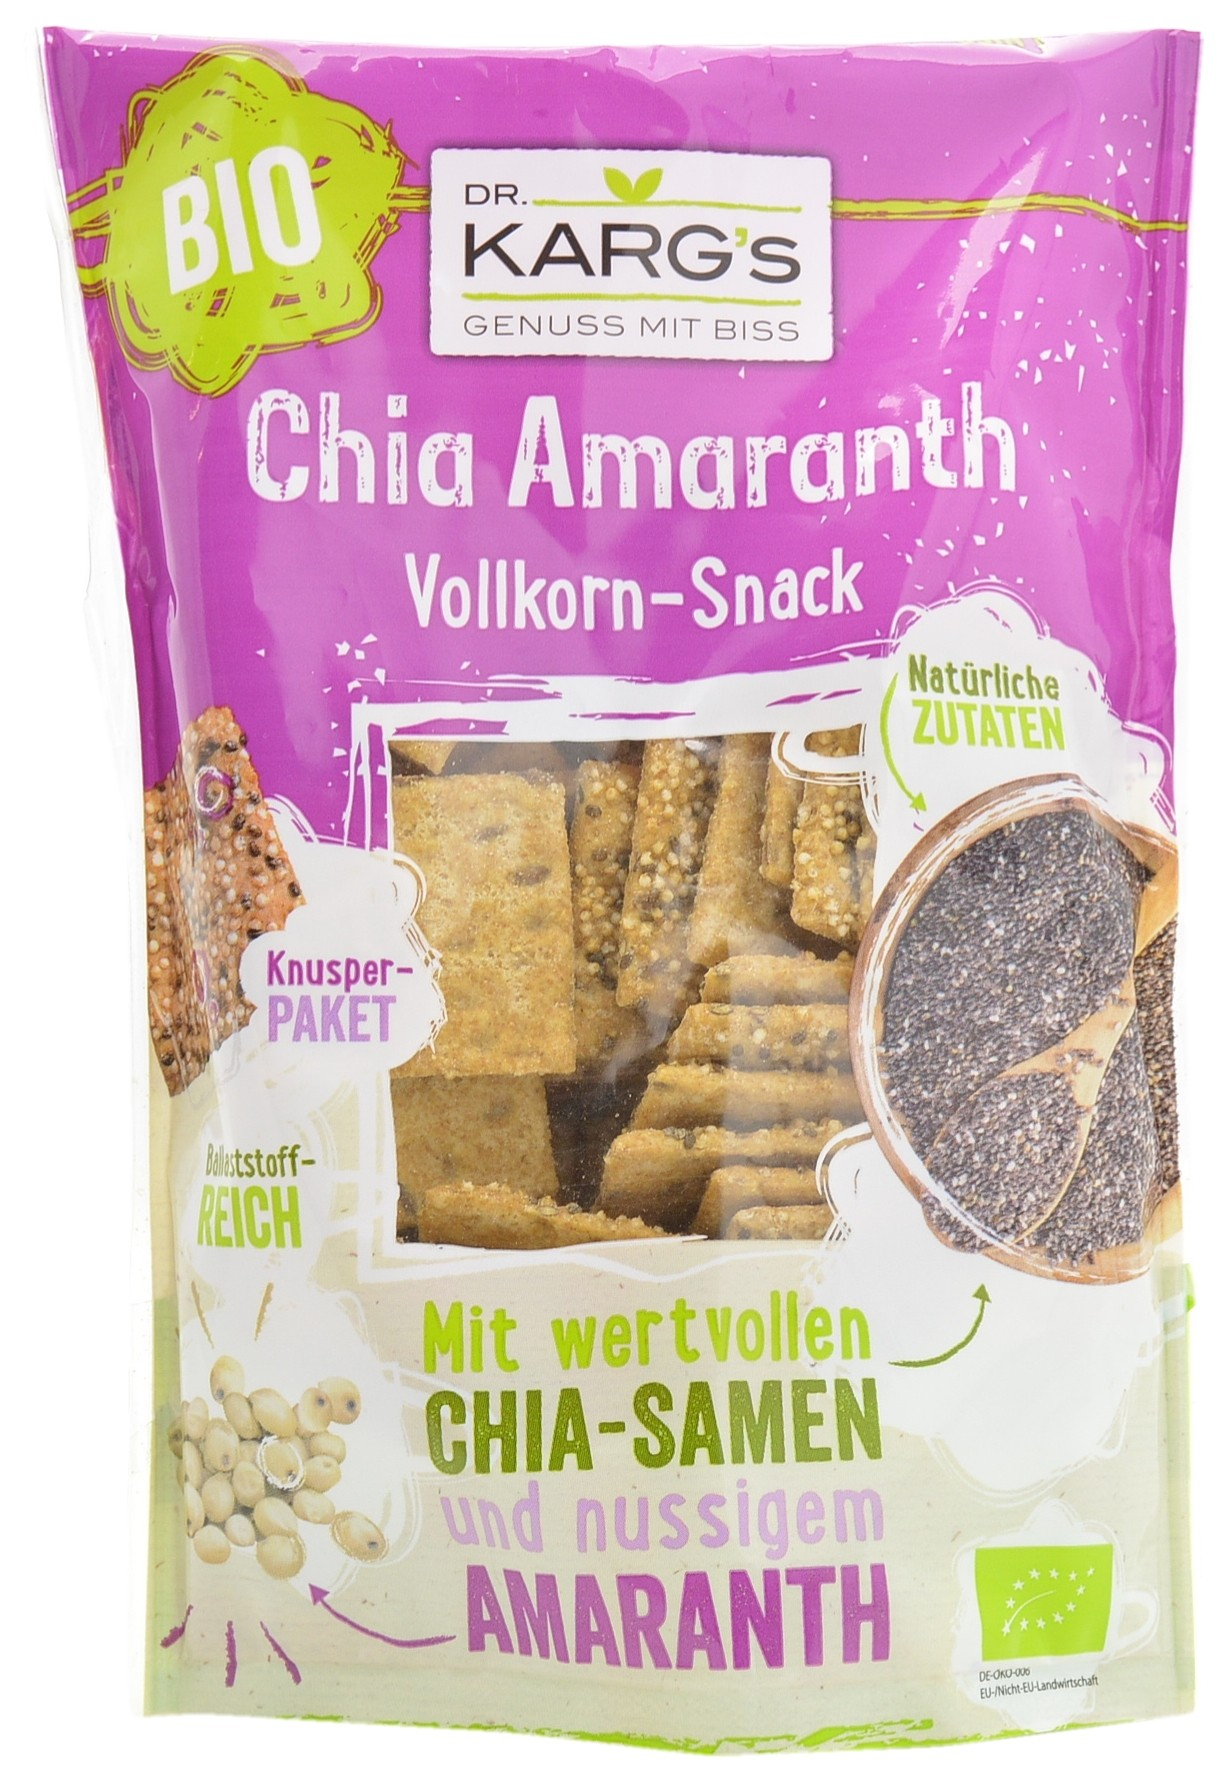 Chia and Amaranth Wholegrain Snacks